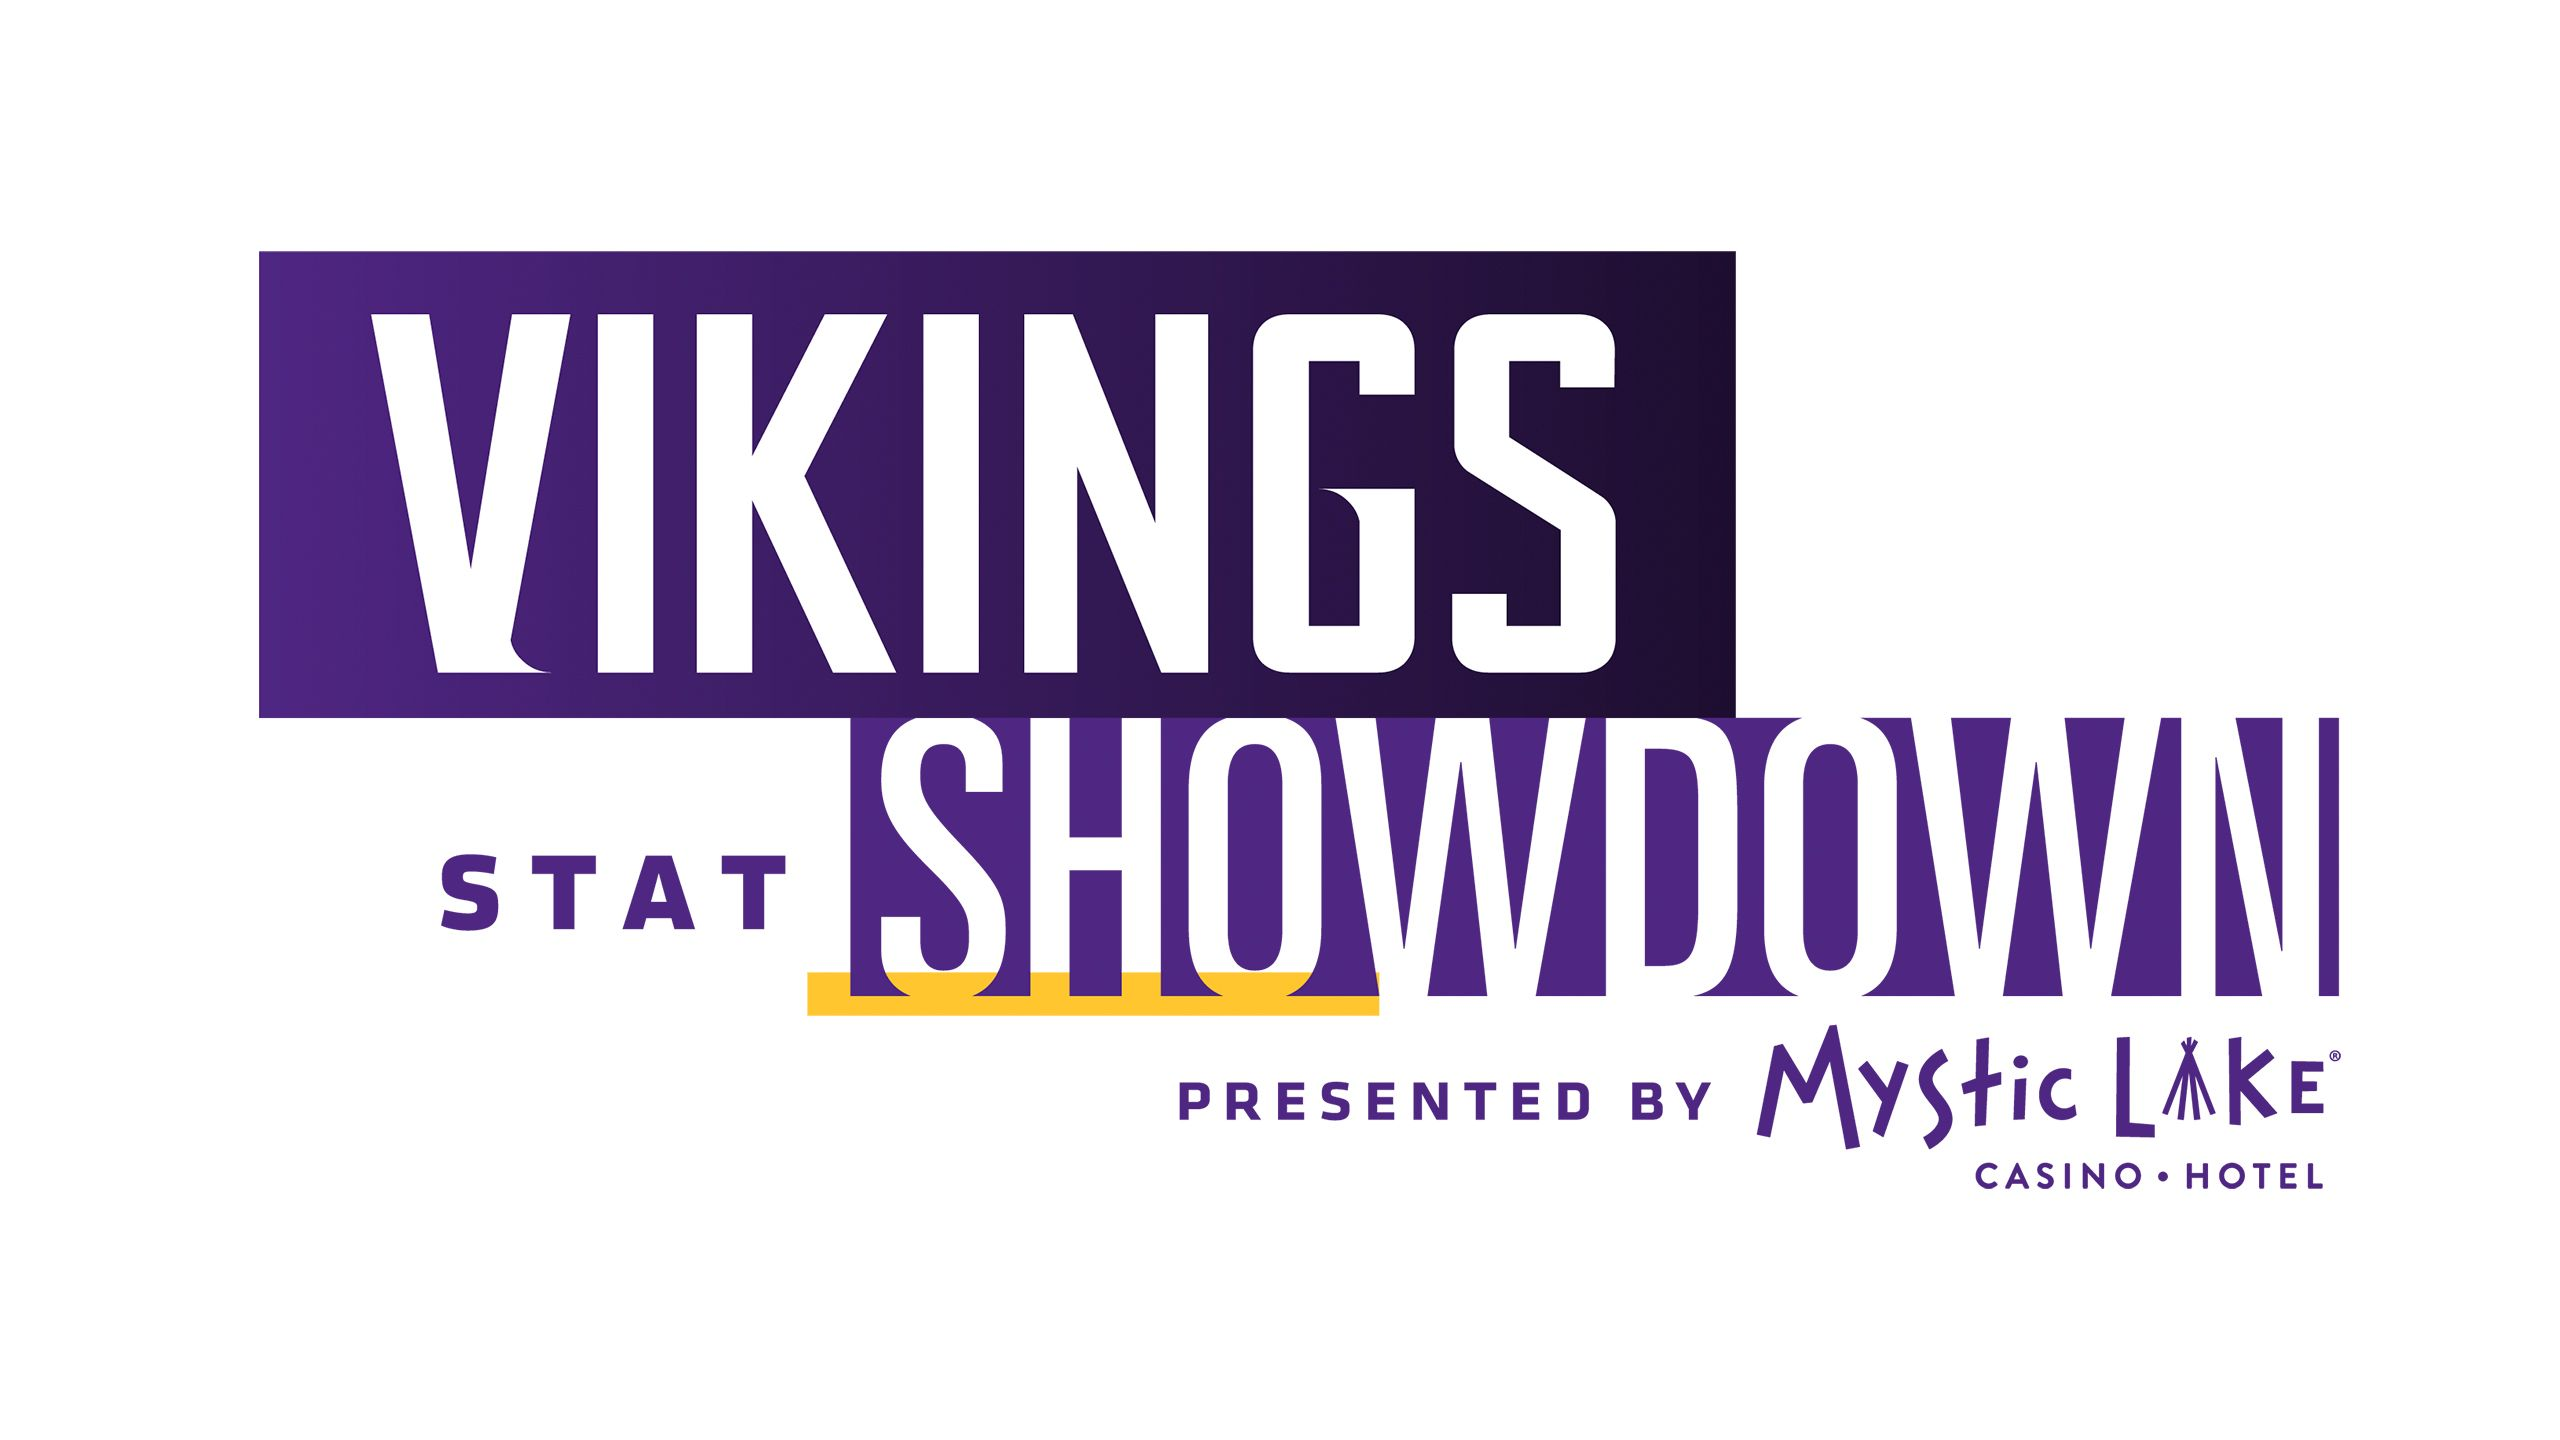 Play 'Vikings Stat Showdown' and Win Weekly Prizes